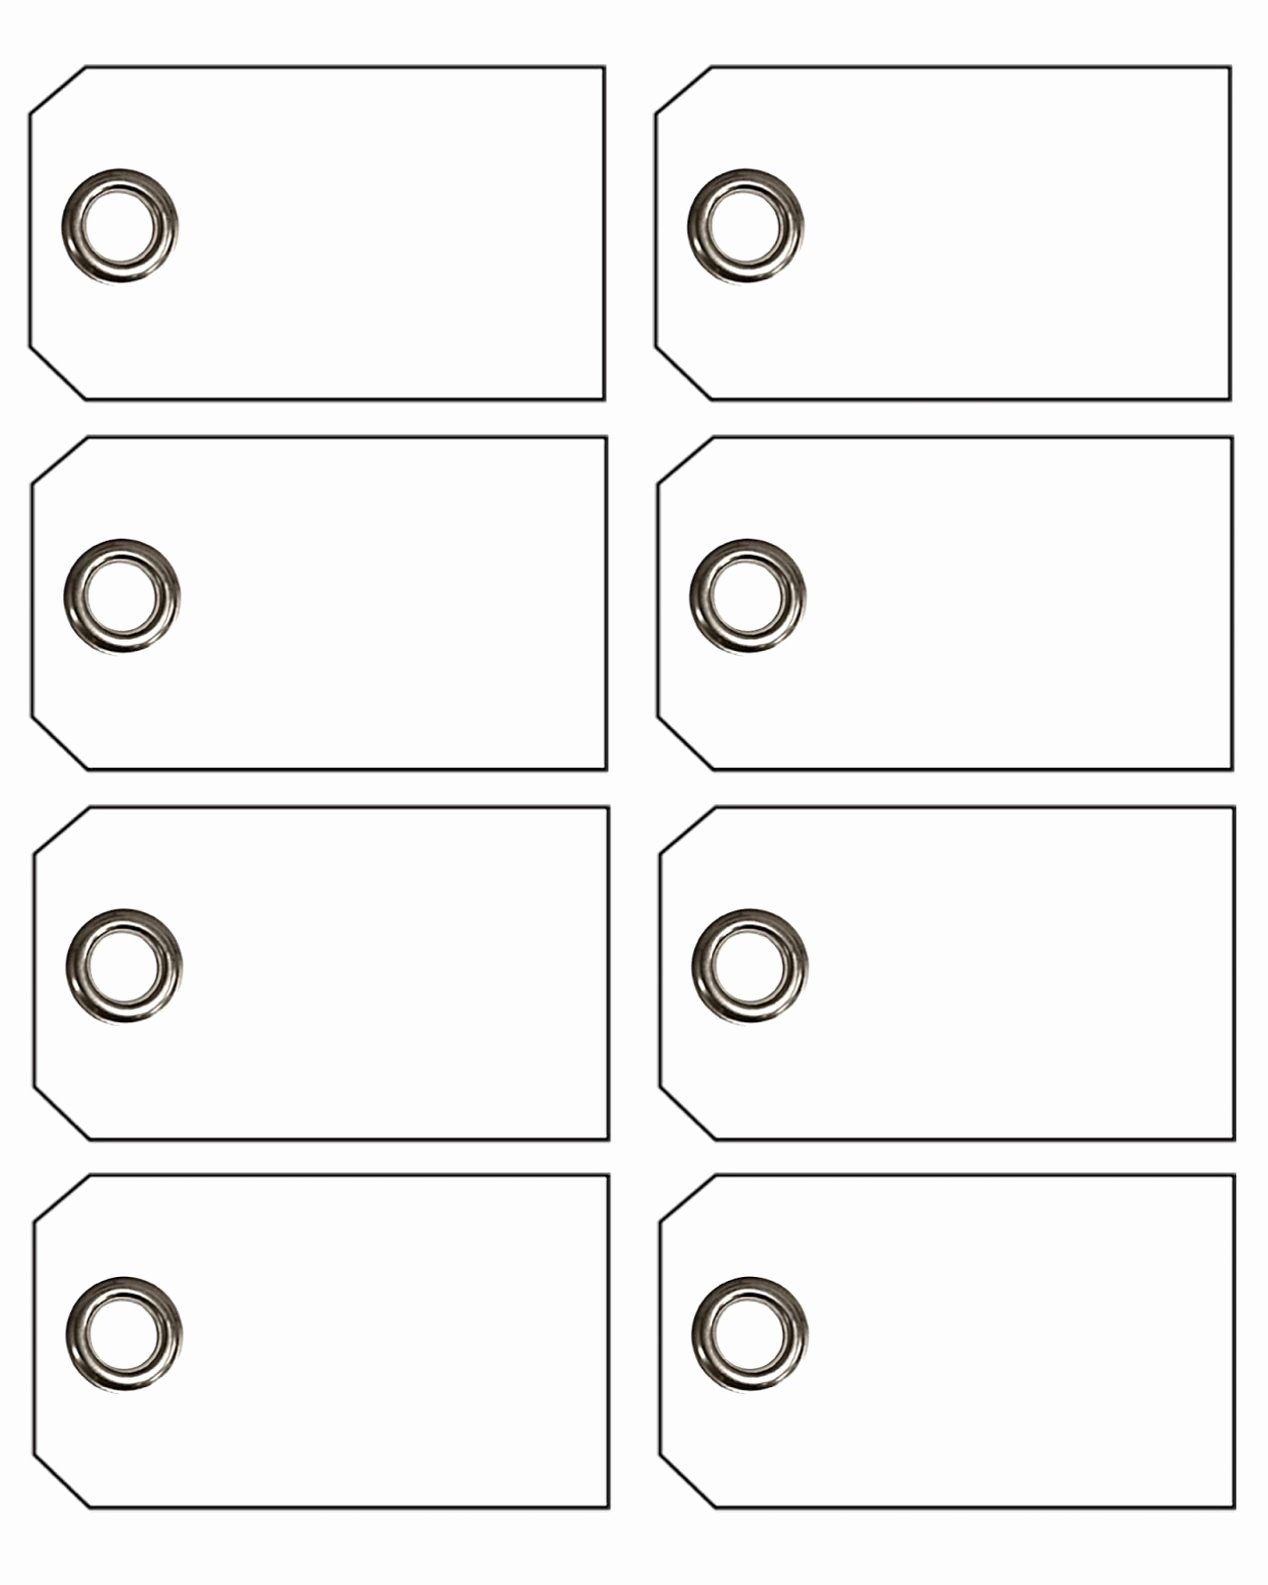 Template for Tags for Gifts Best Of Free Printable Gift Tags Templates